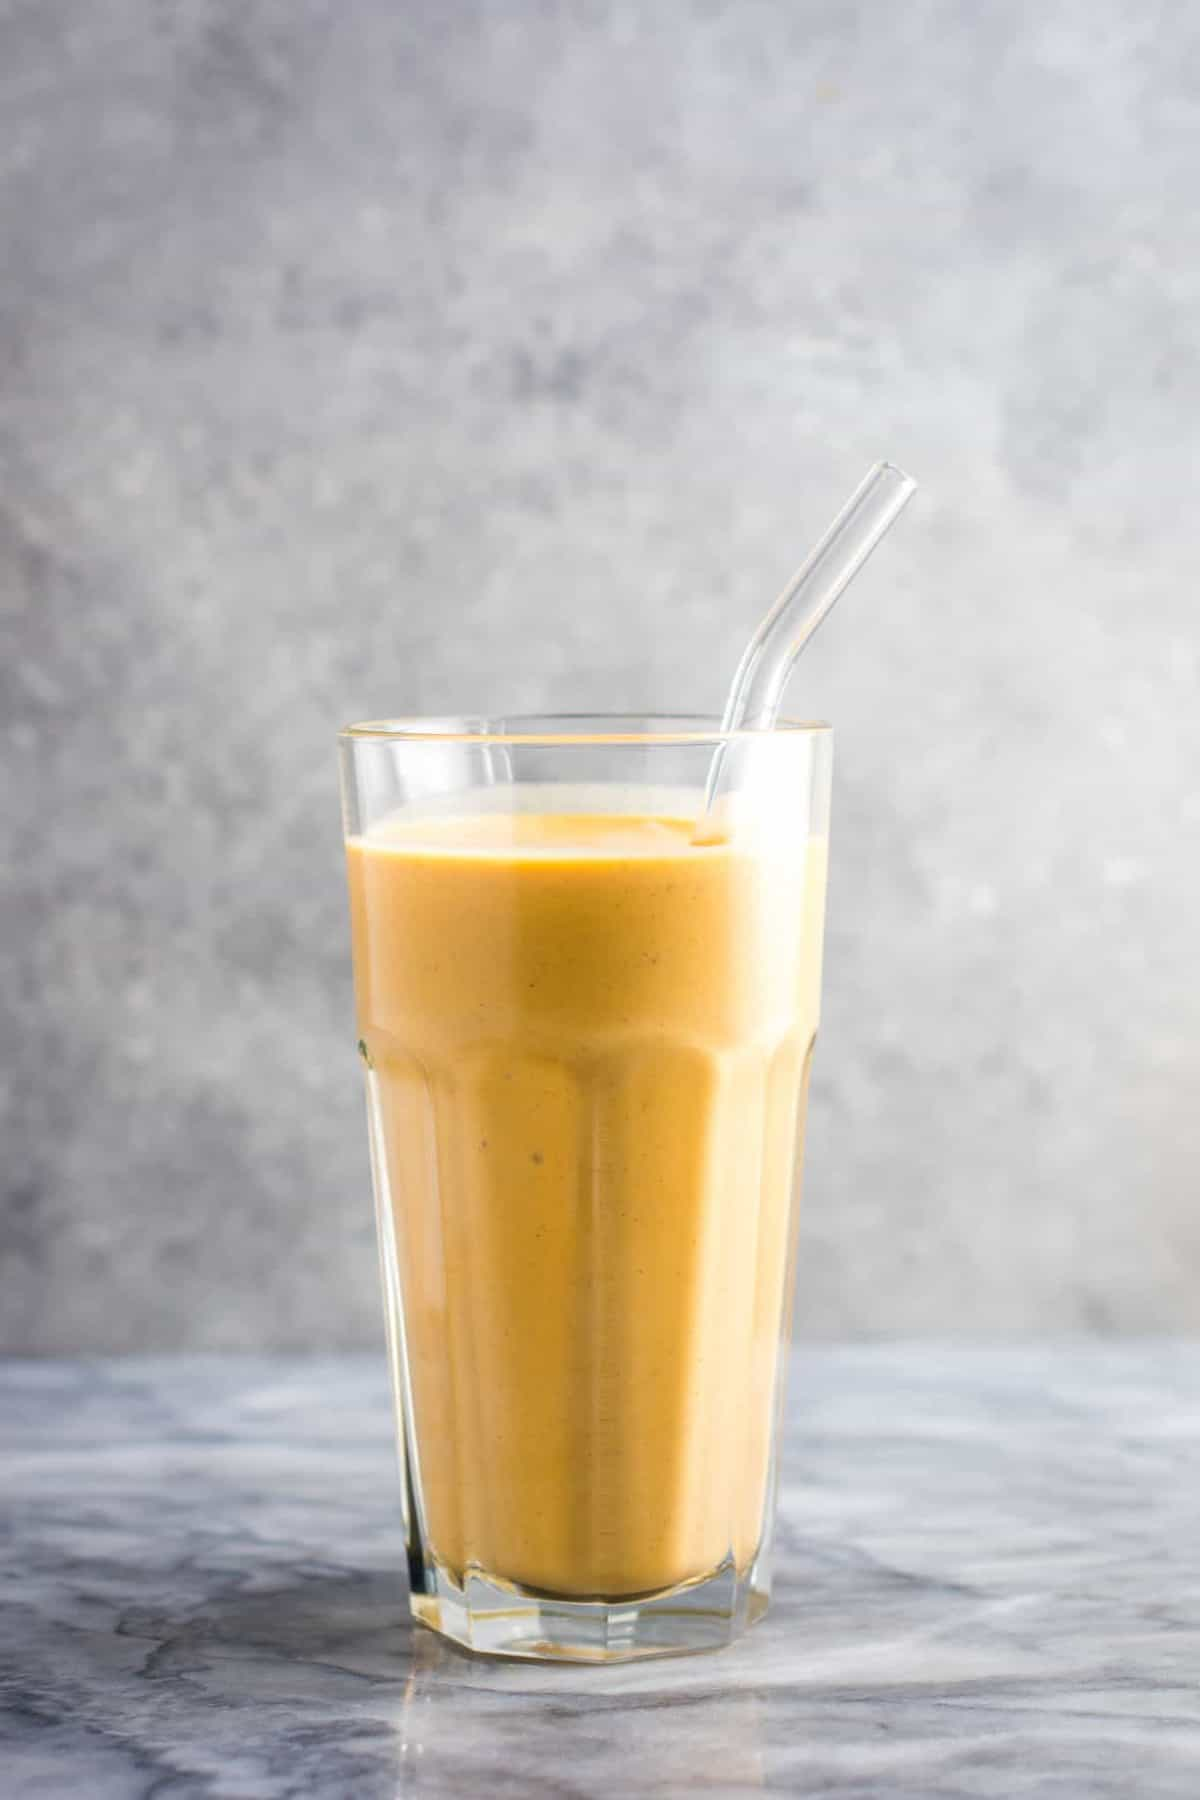 Sweet potato smoothie recipe (vegan) – this tastes like dessert! Really good – I would make it again. #sweetpotatosmoothie #sweet potato #smoothie #dessert #breakfast